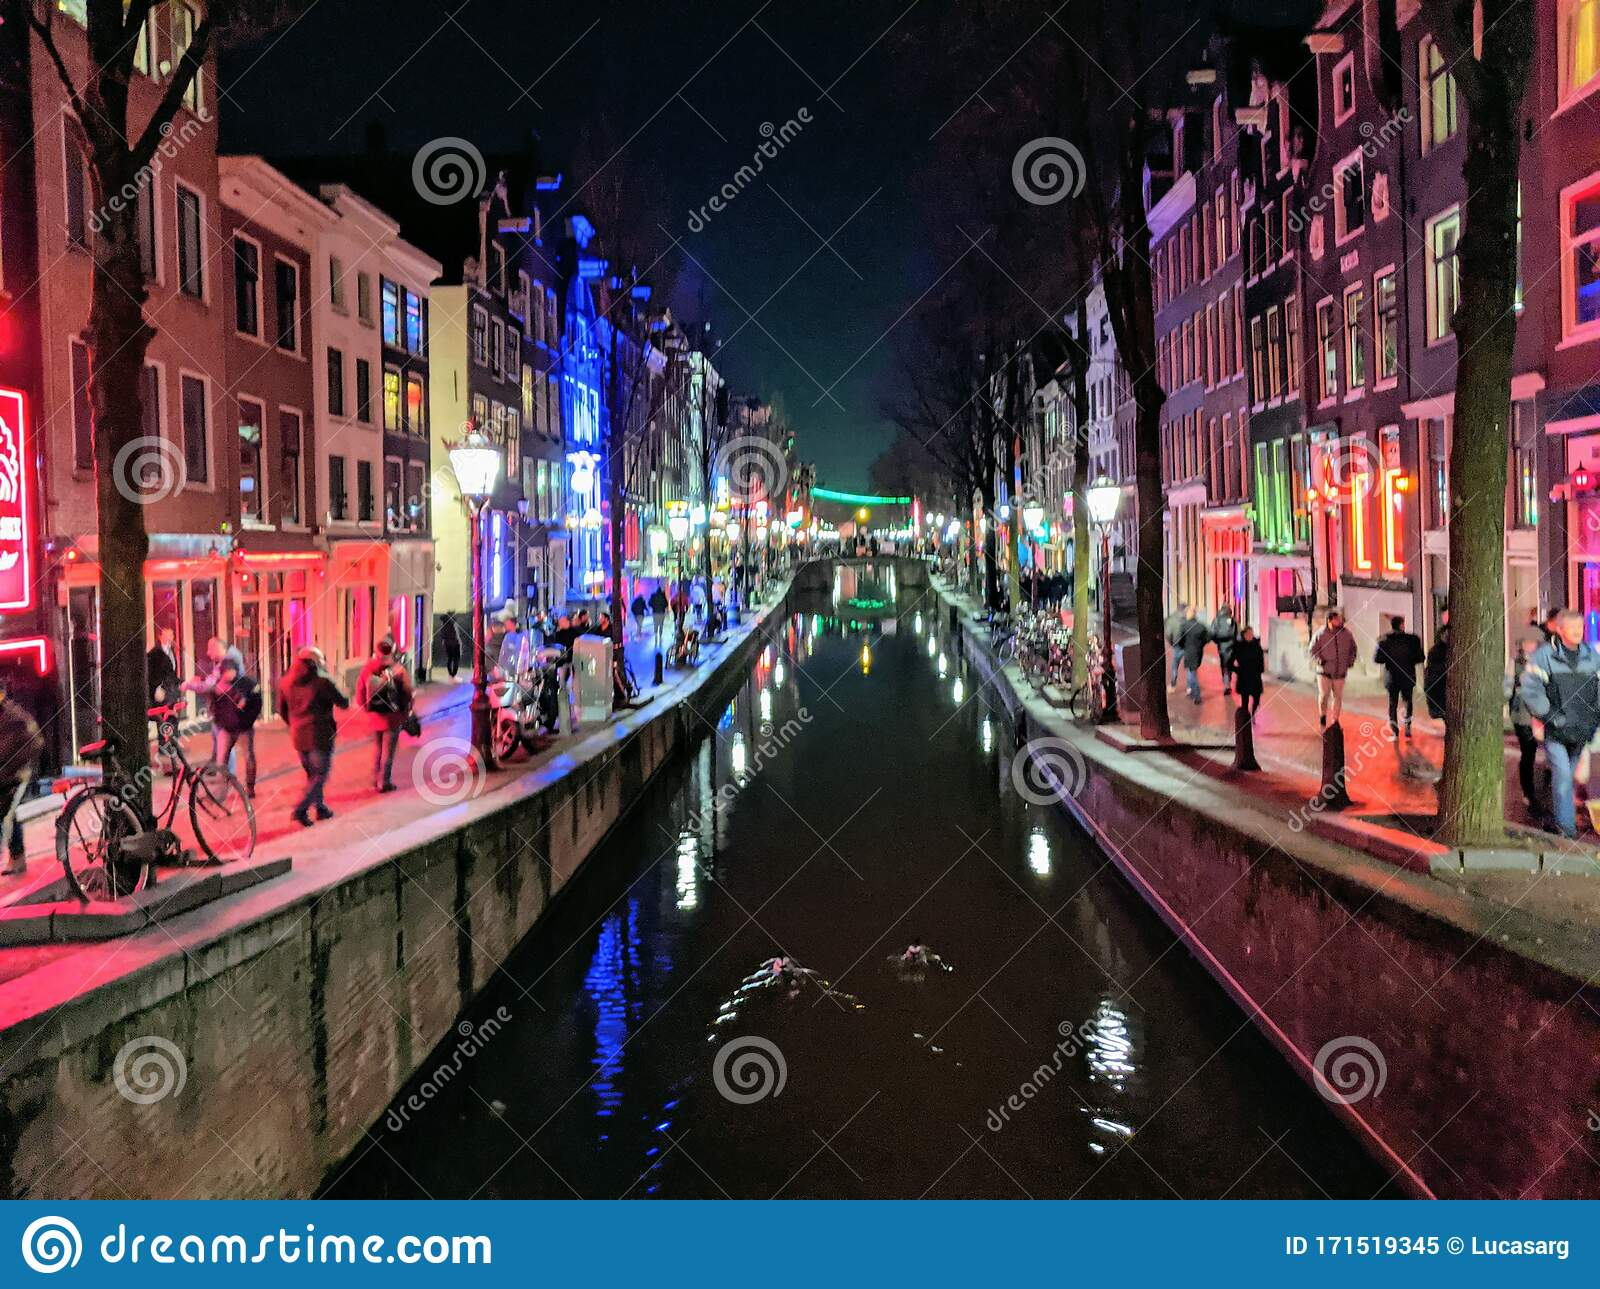 Red Zone Lights, Canals And Houses Of Amsterdam City, In